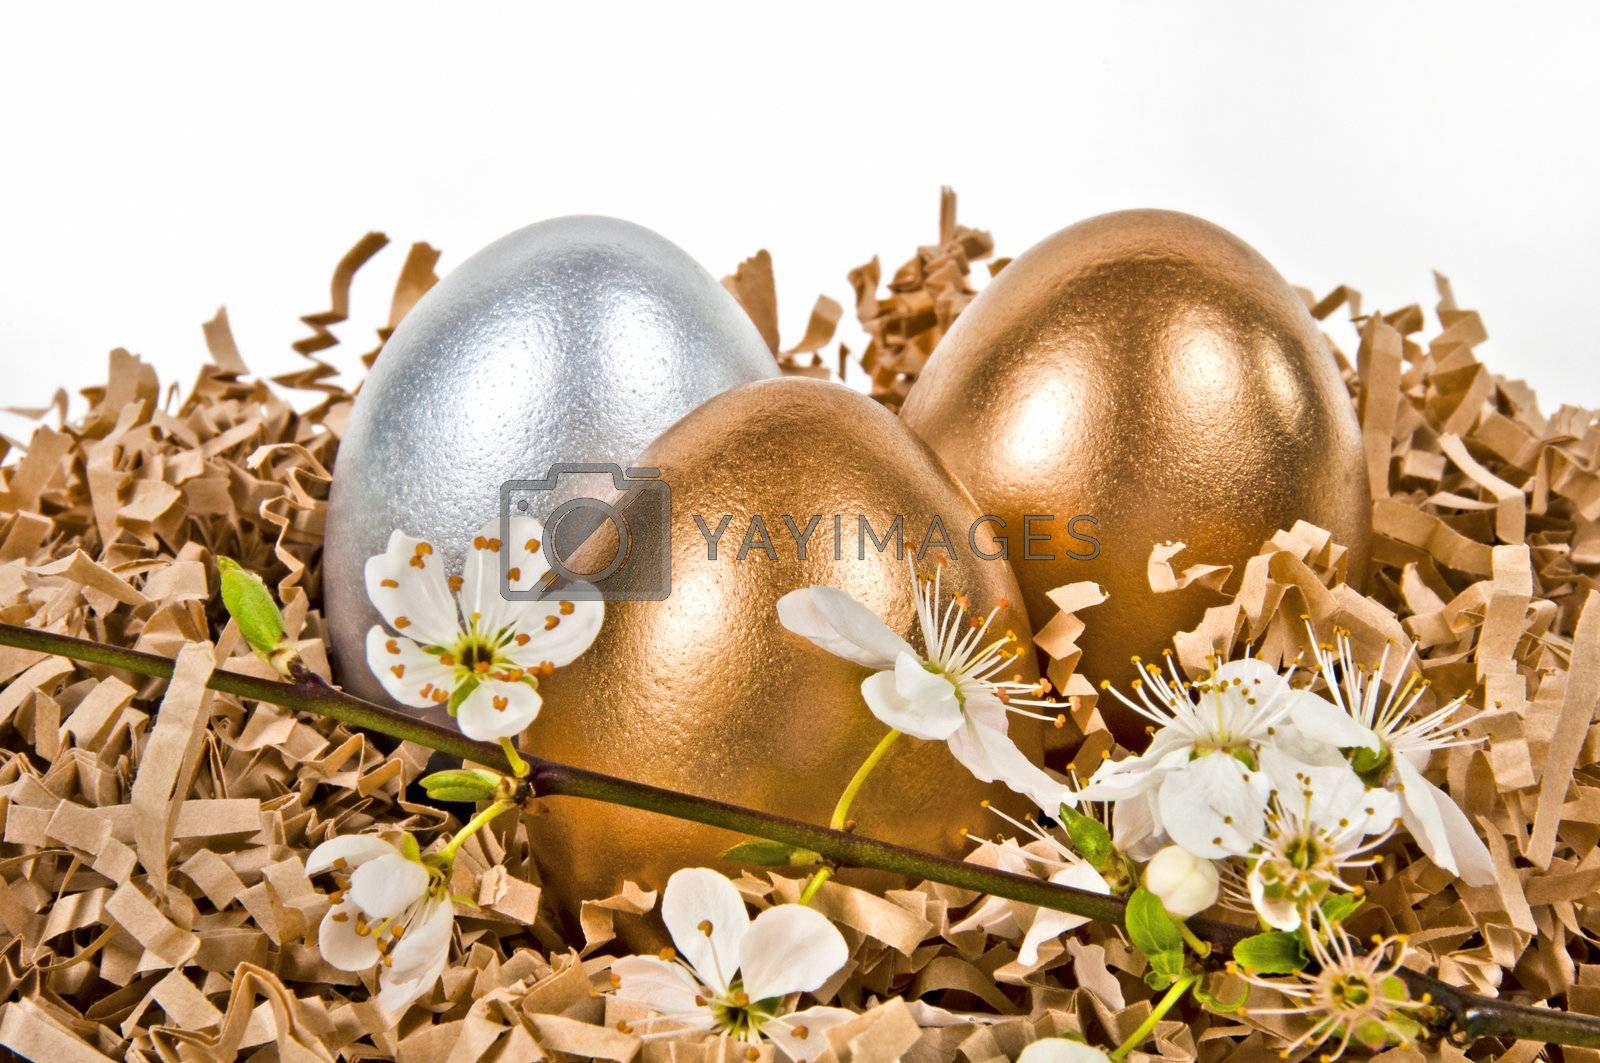 Golden and silver eggs in the nest.